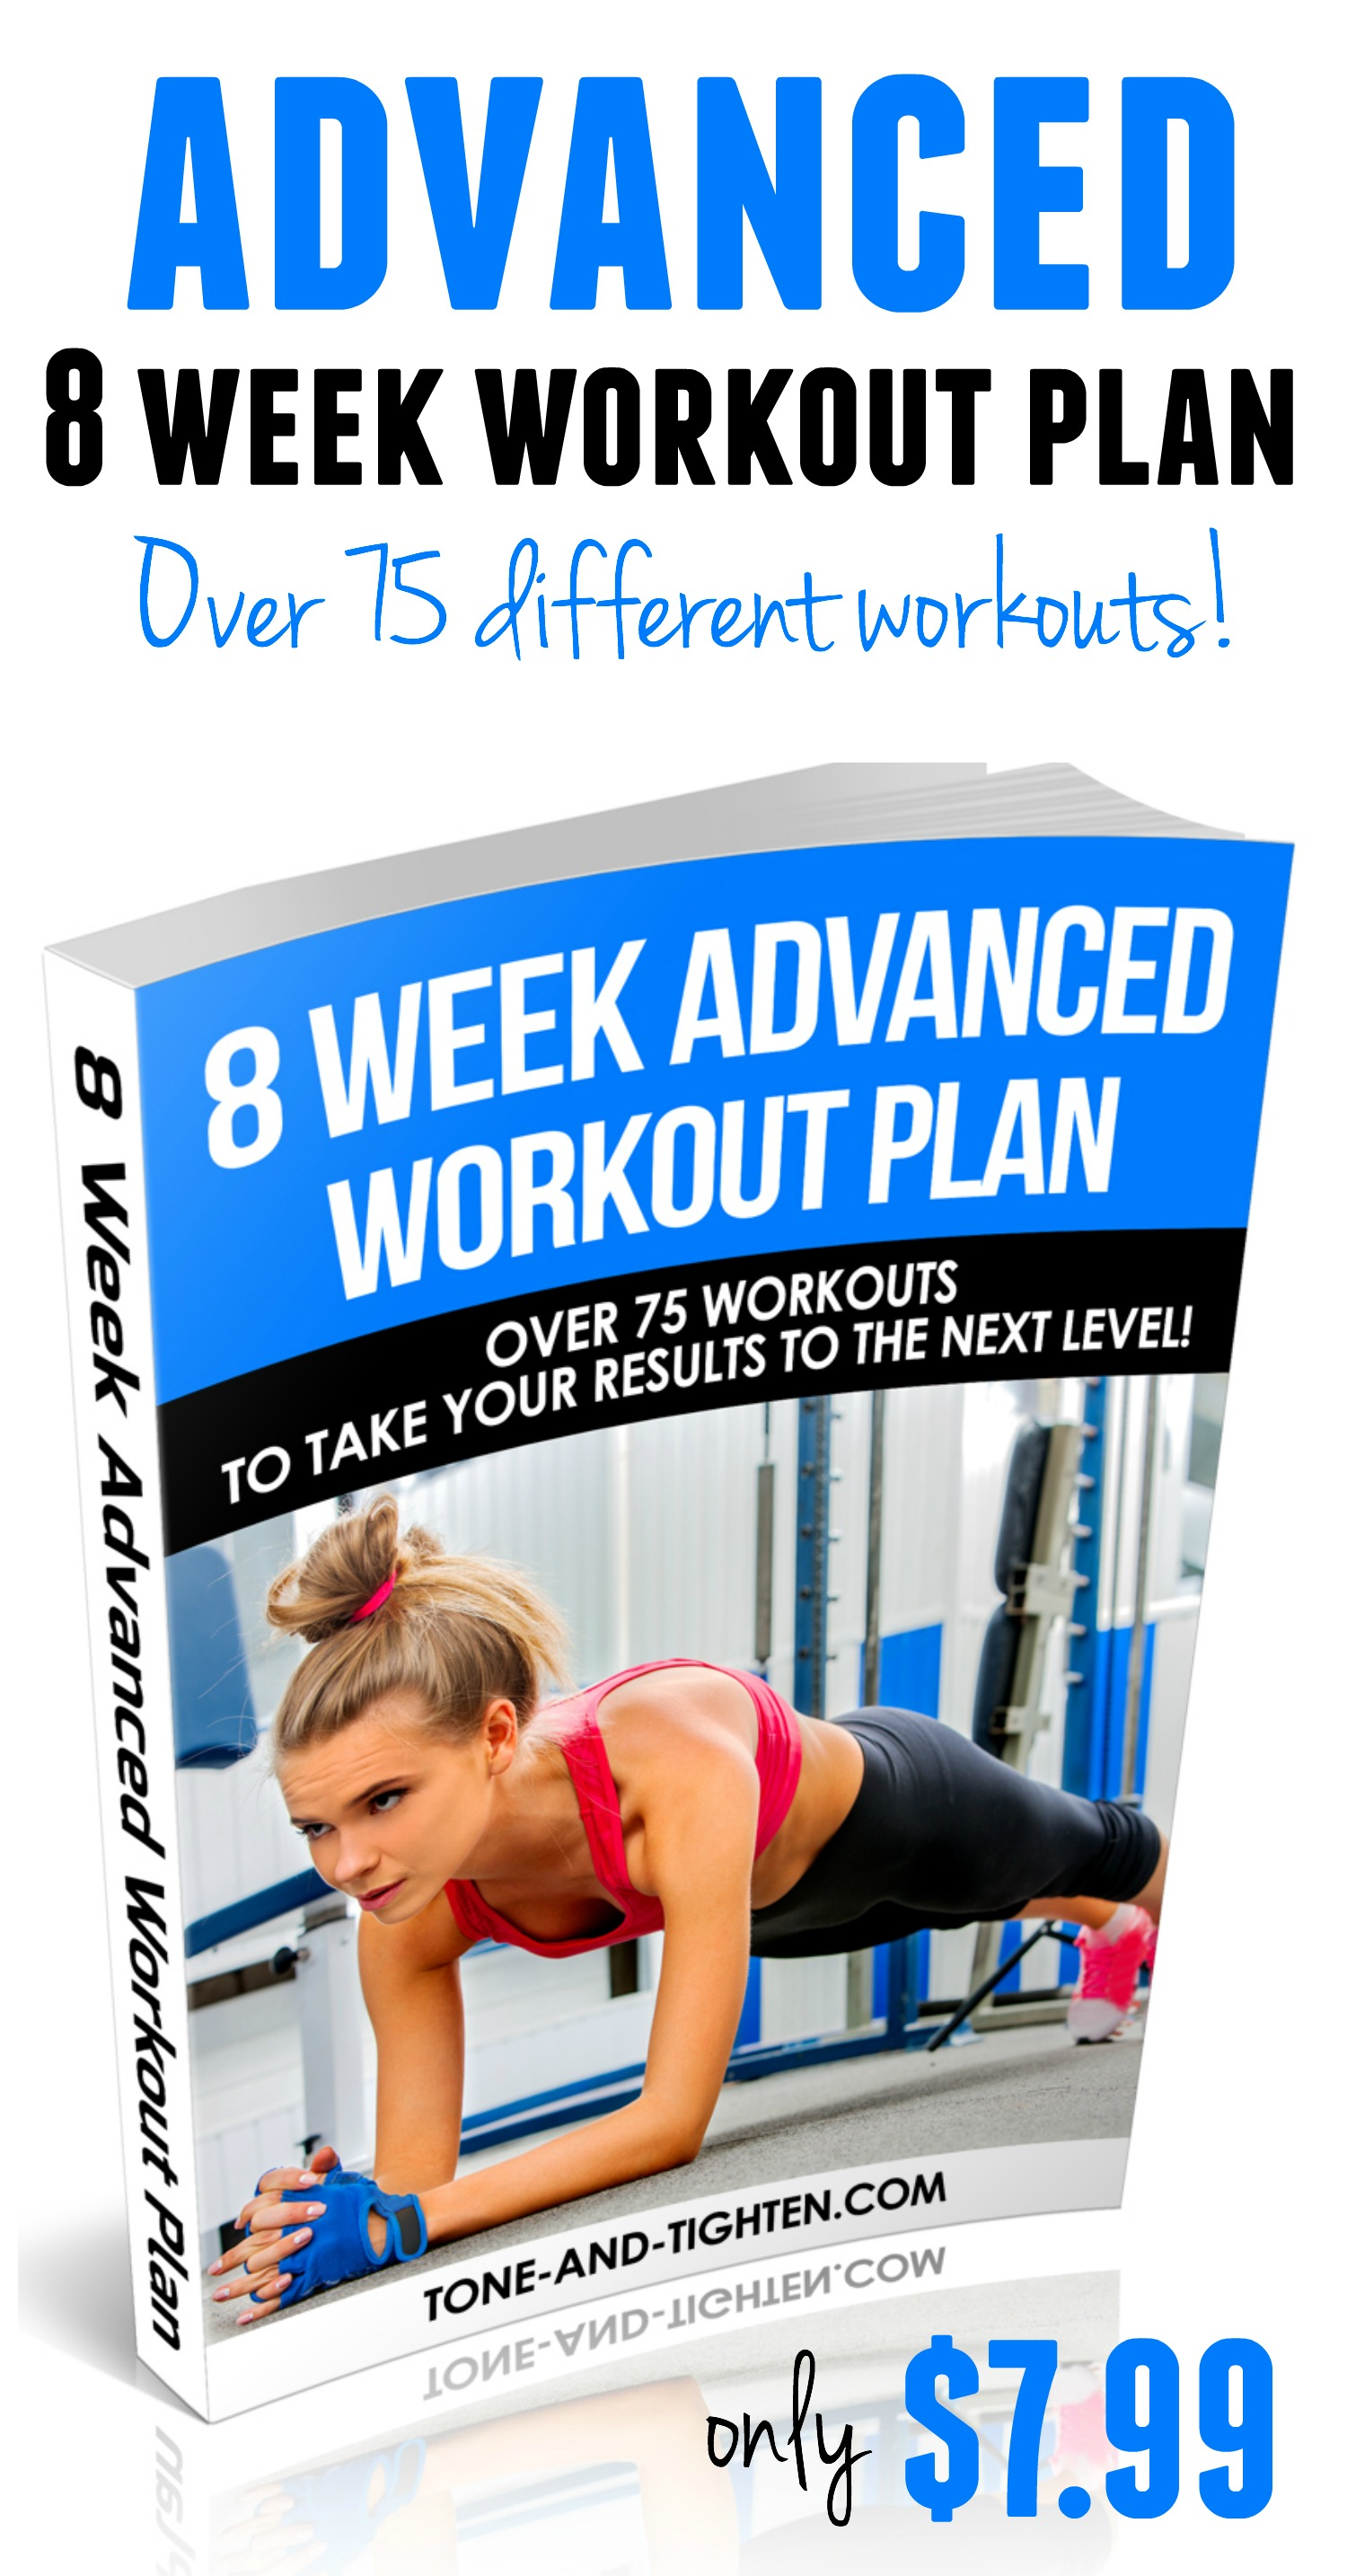 Advanced 8 Week Workout Plan from Tone-and-Tighten.com